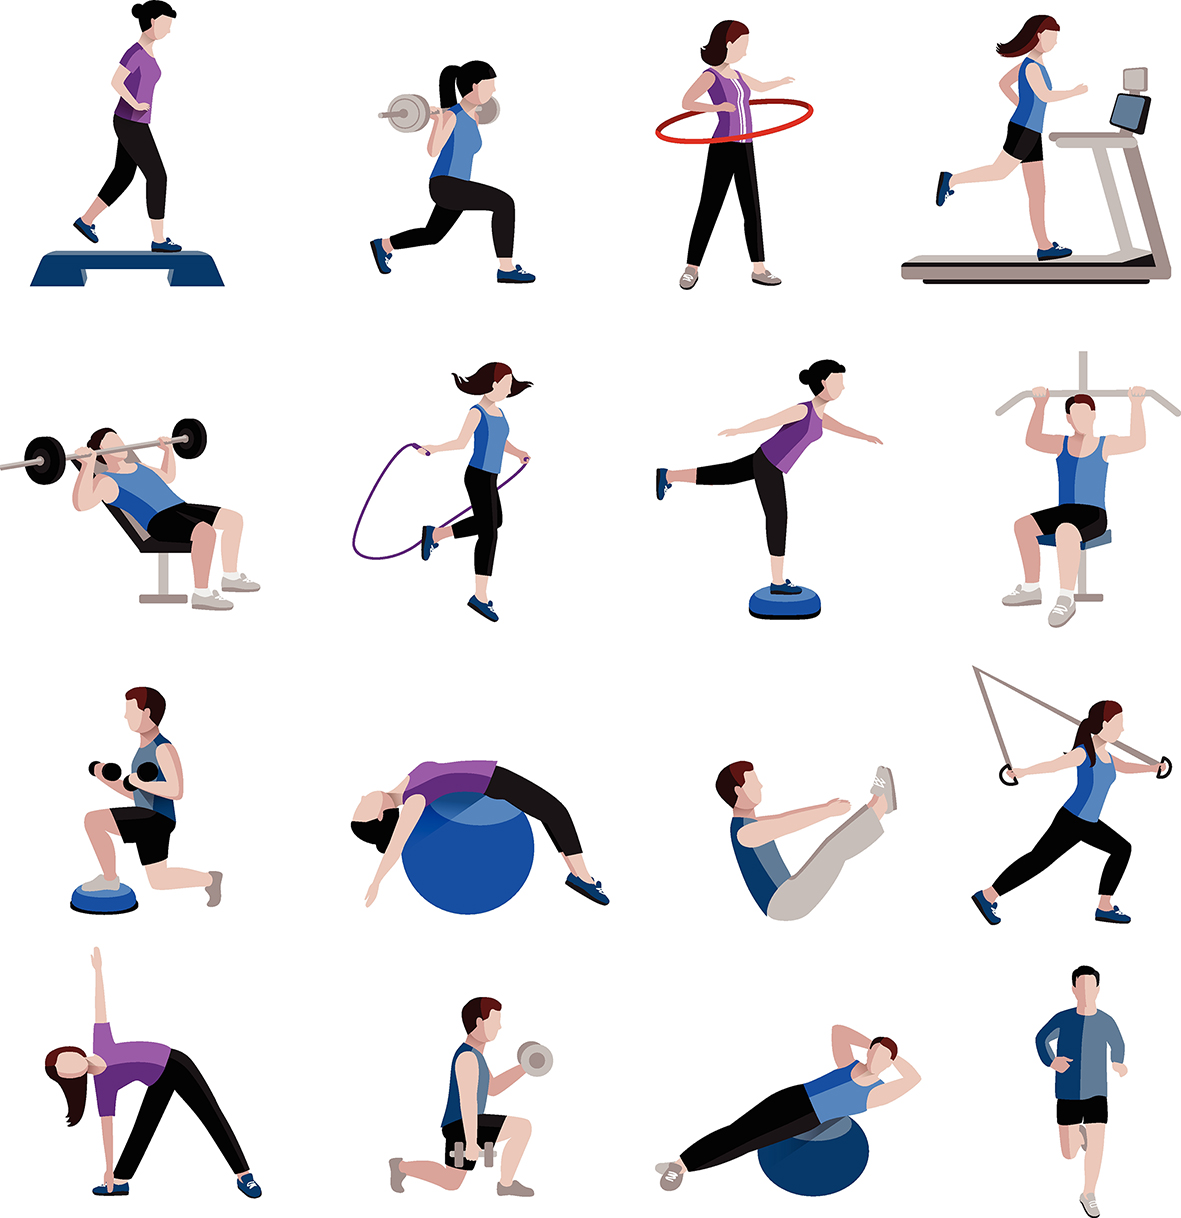 Workout clipart moderate exercise. Top fitness trends of